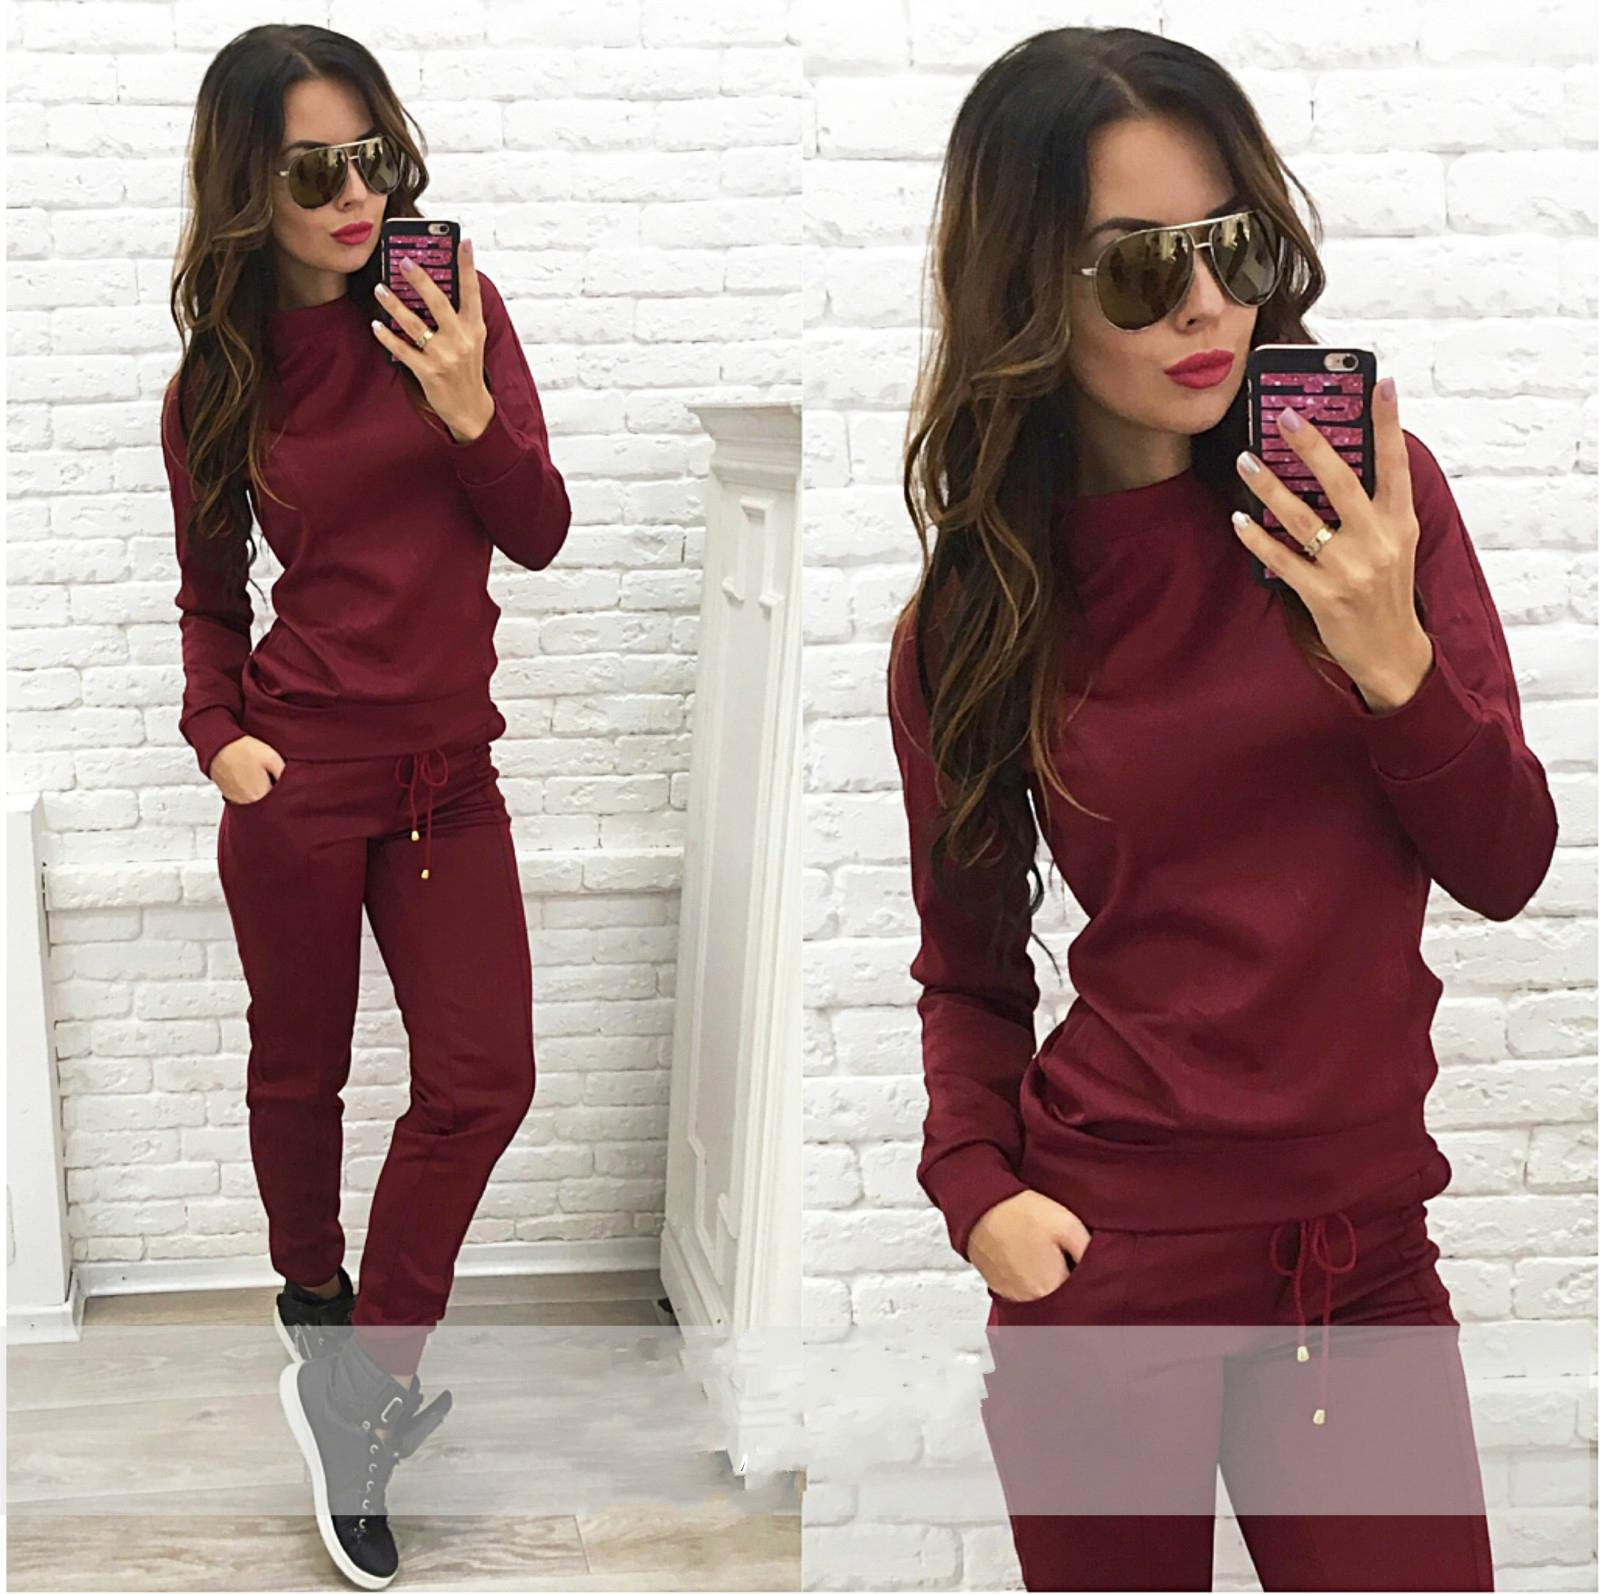 Solid Ladies 2020 New Design Fashion Hot Sale Suit Set Women Tracksuit Two-piece Style Outfit Sweatshirt Sport Wear